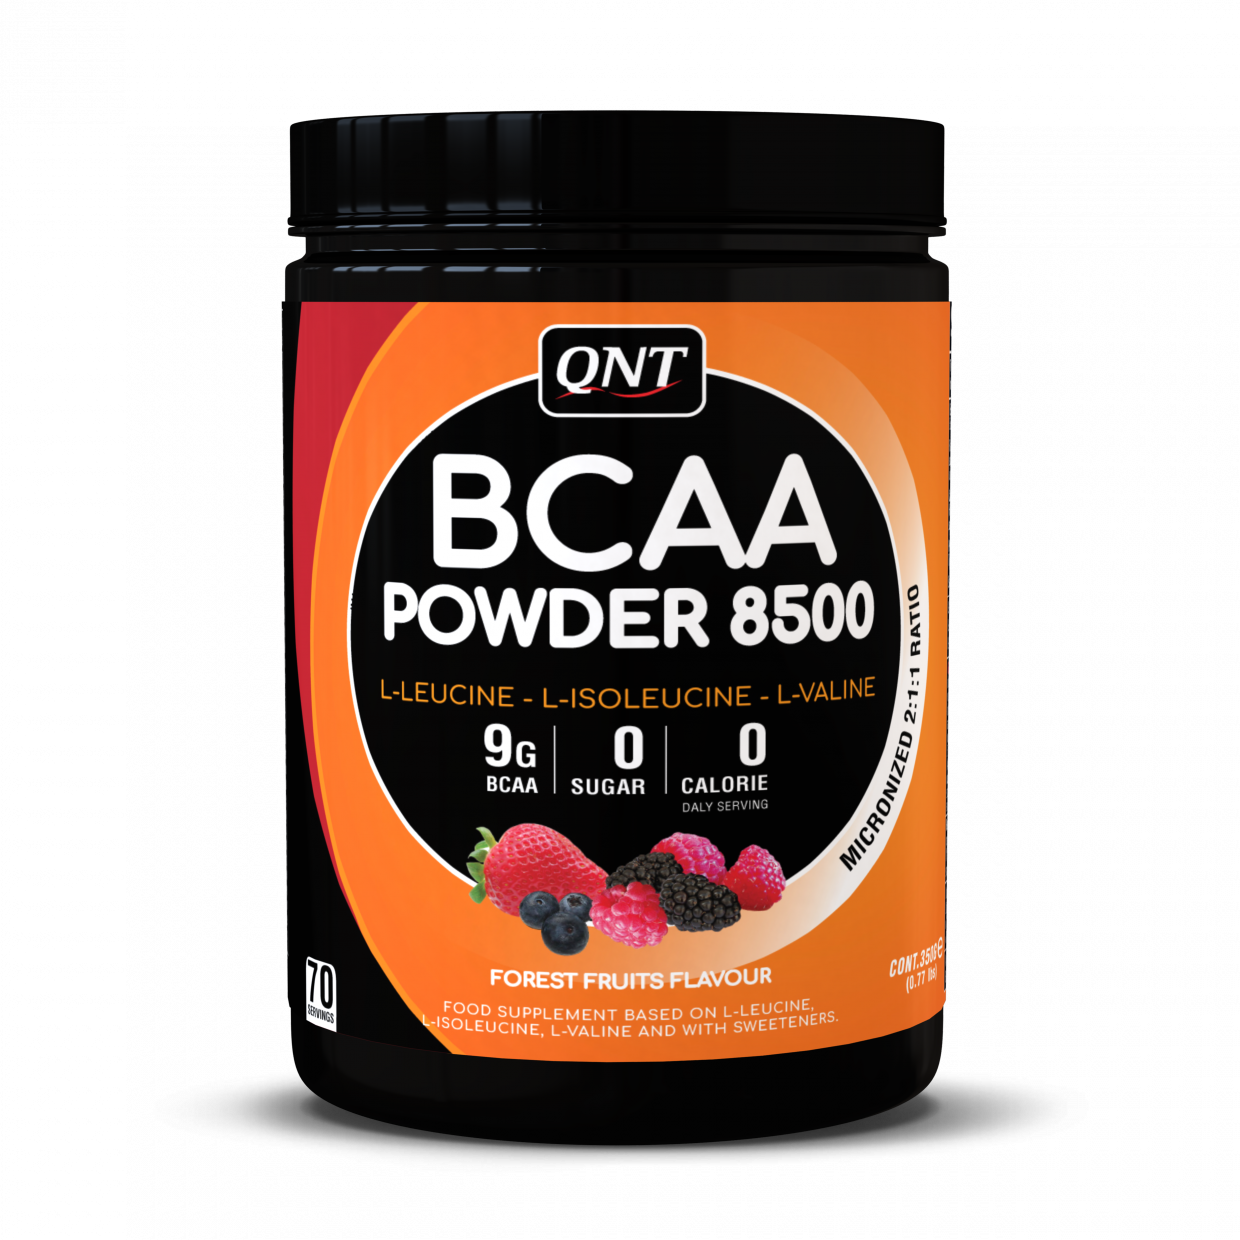 BCAA Powder 8500 350g